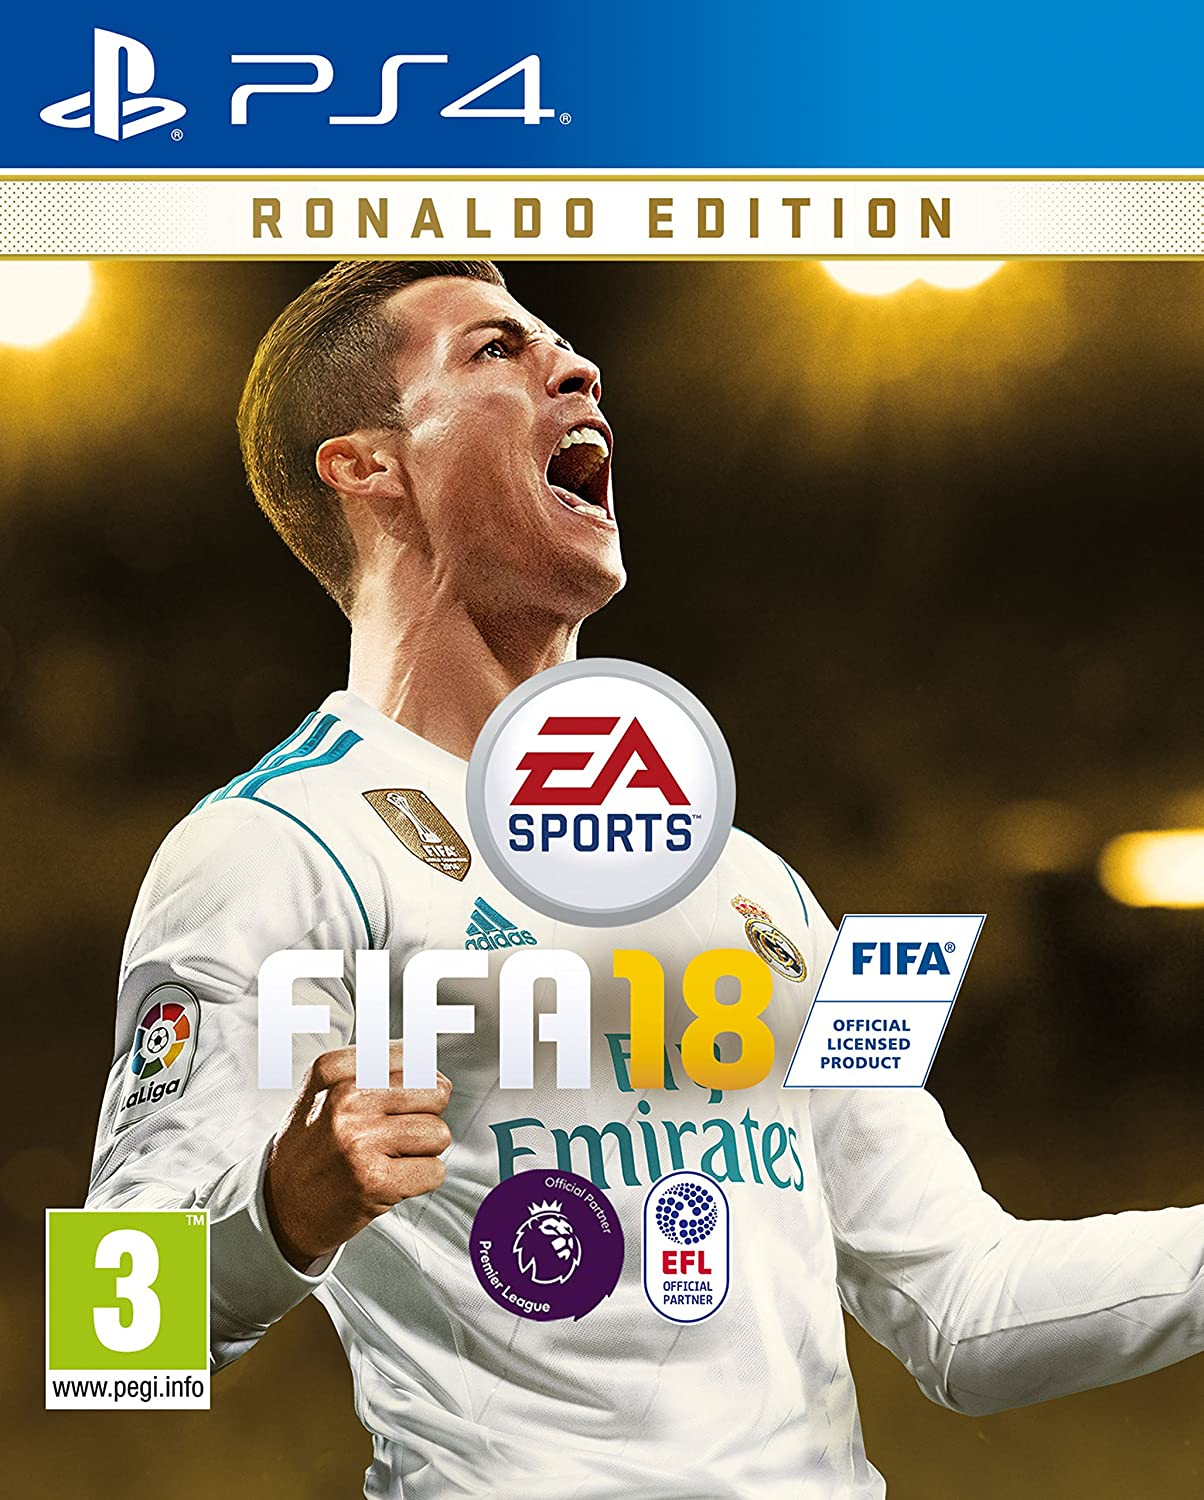 FIFA 18 Ronaldo Edition (PS4), PlayStation 4